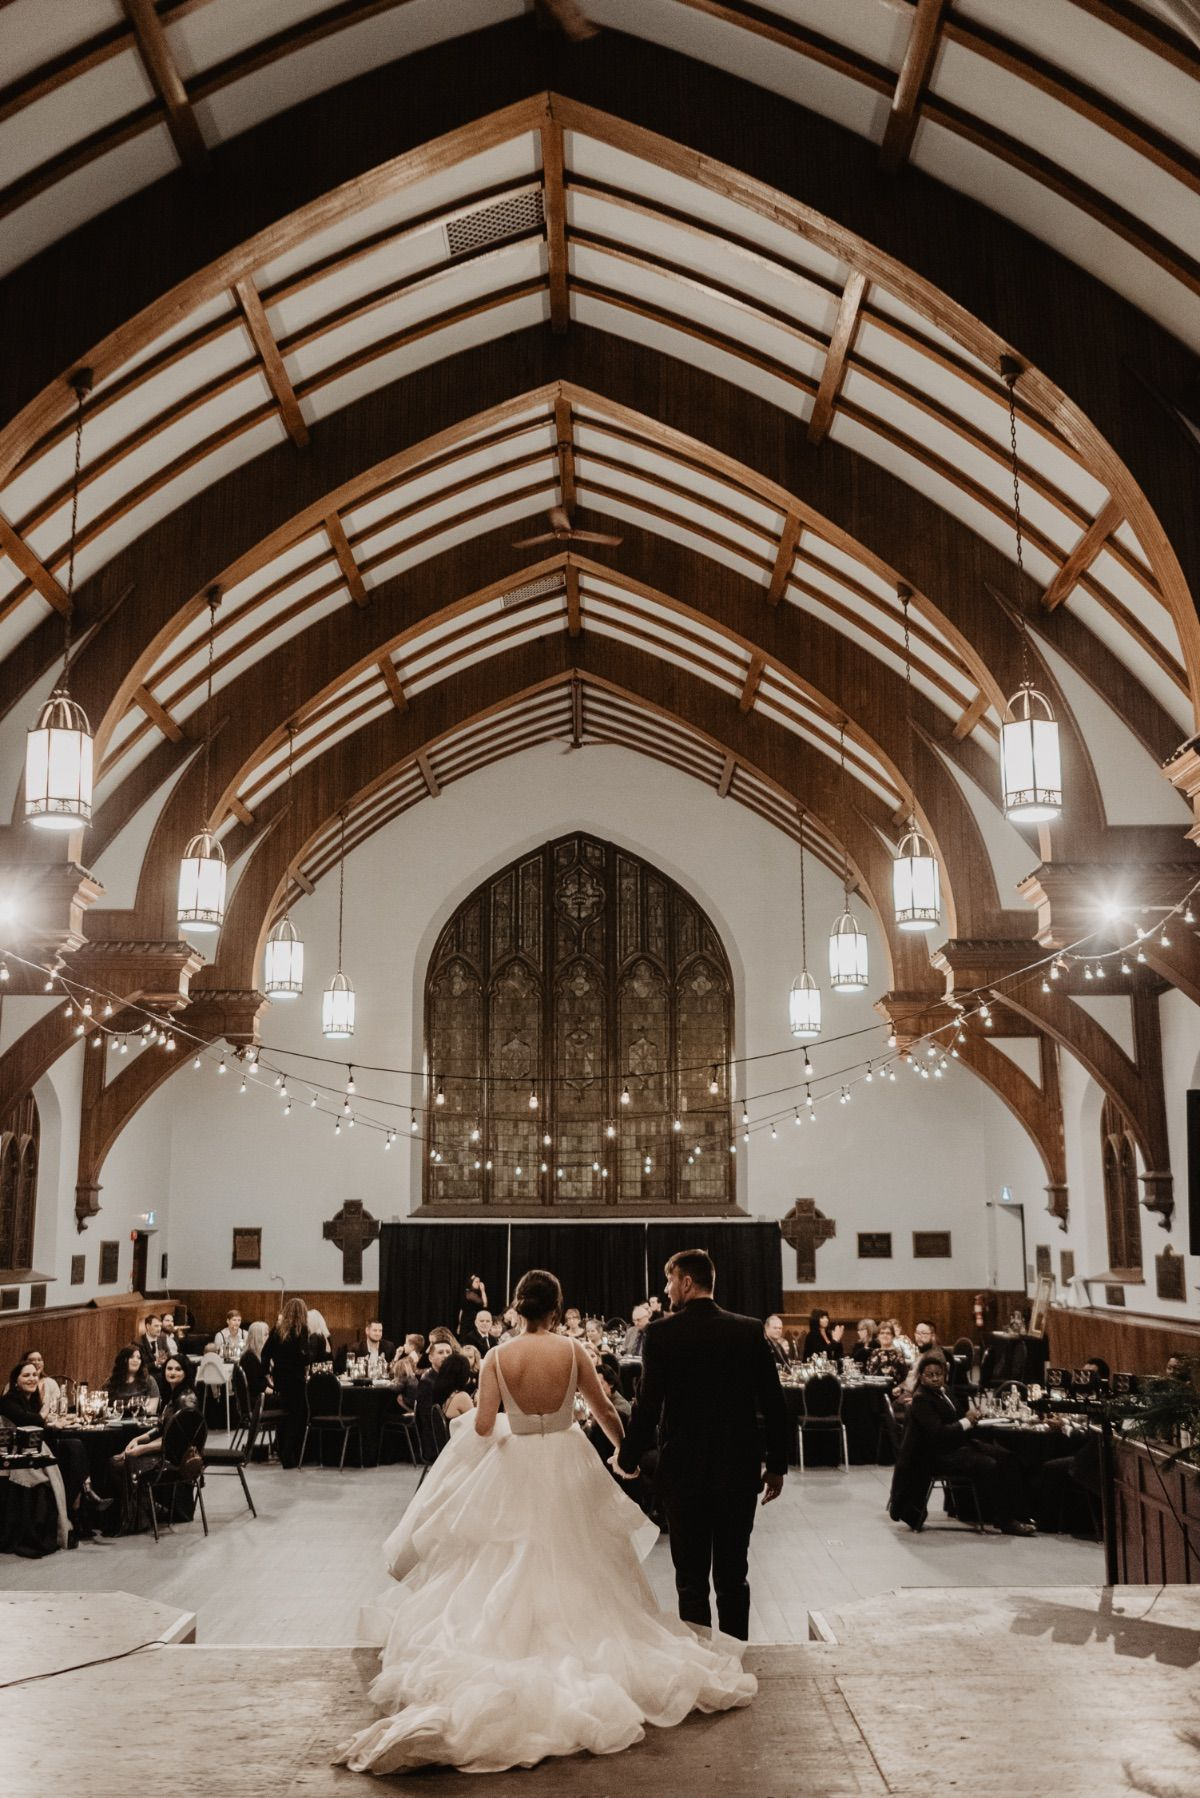 Pin By Iamkdot Photography On Wedding Reception Winter Wedding Wedding Event Space